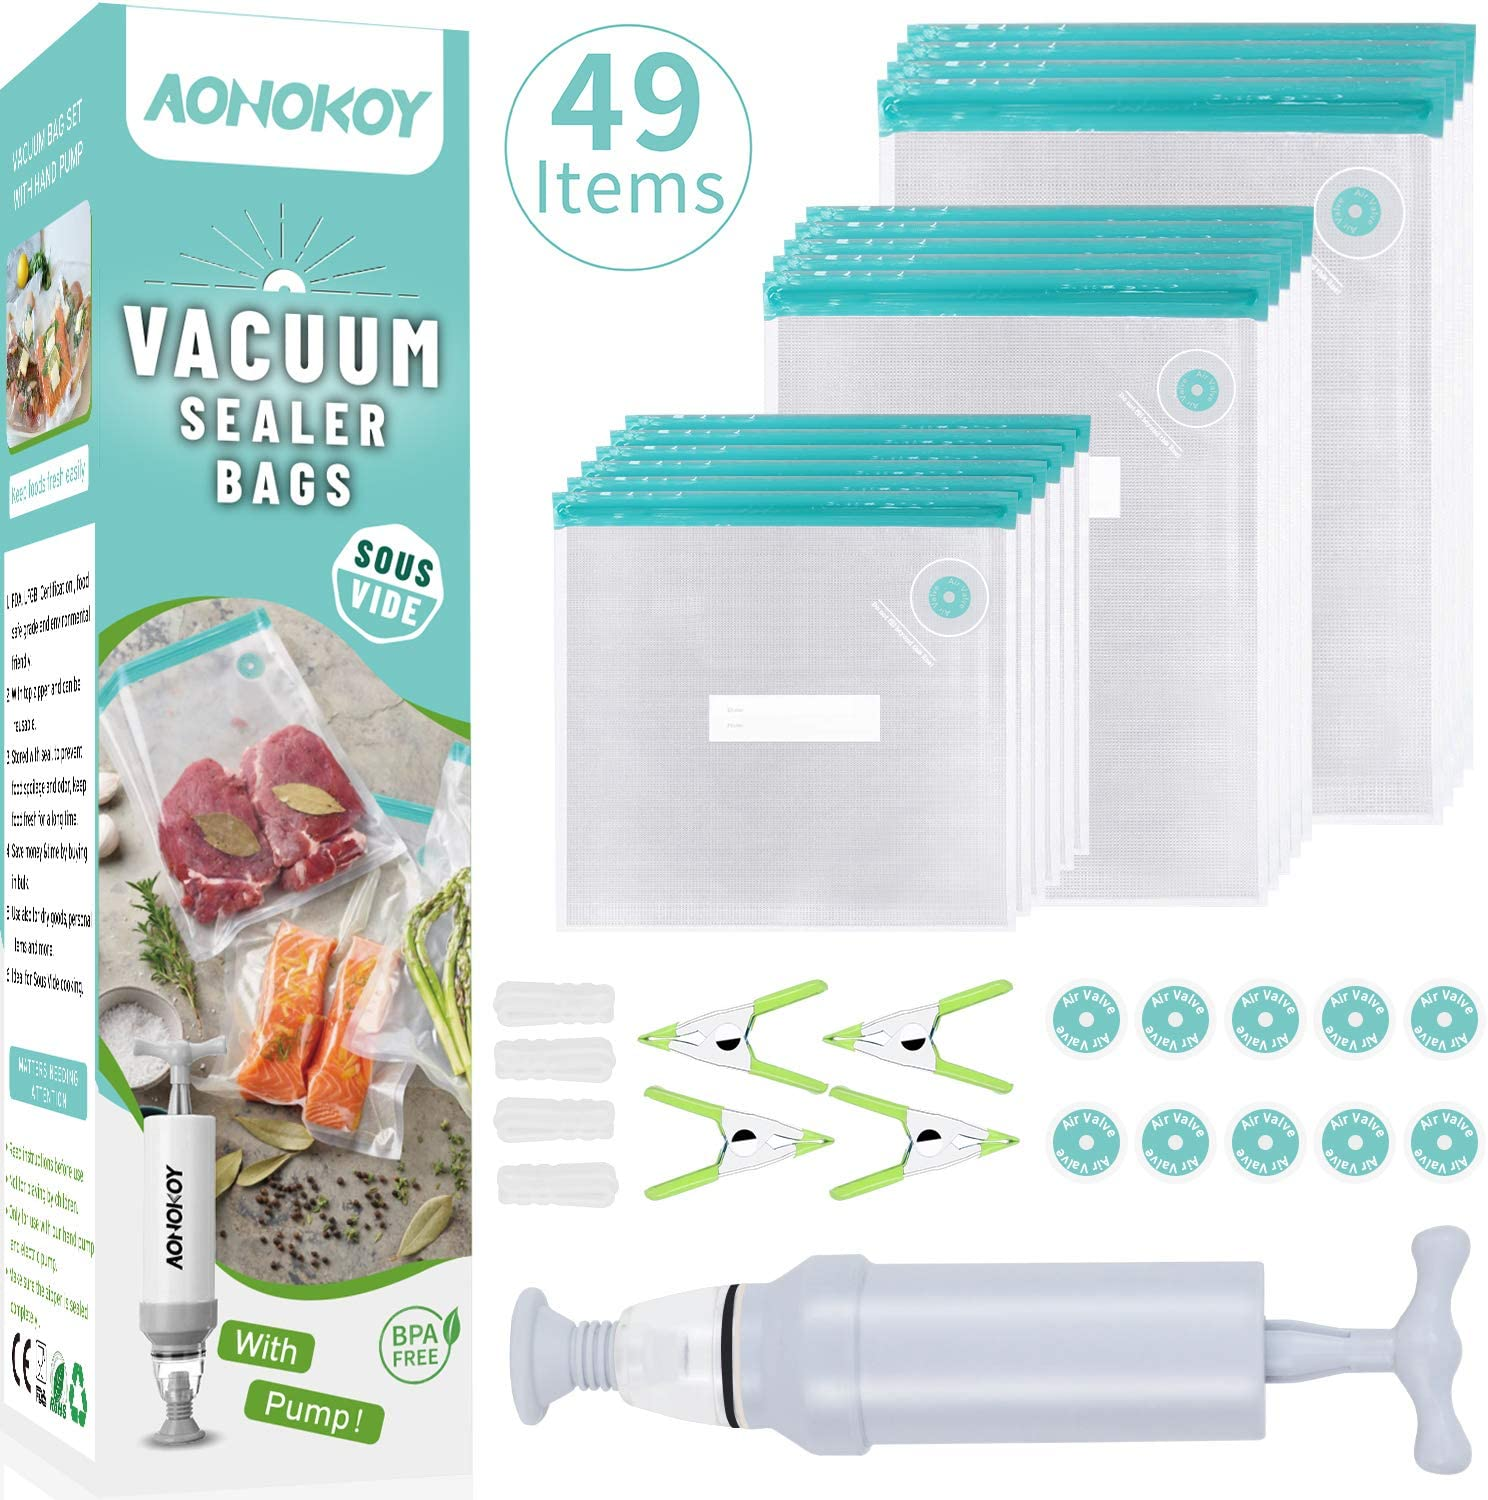 Sous Vide Bags 30 Reusable Vacuum Food Sealer Bags for Anova, Joule Cookers, 3 Sizes Sous Vide Bag Kit with Pump, 4 Sous Vide Bag Clips, 4 Sealing Clips, 10 Air Valve Port Stickers for Food Storage and Sous Vide Cooking (Tiffany Blue)